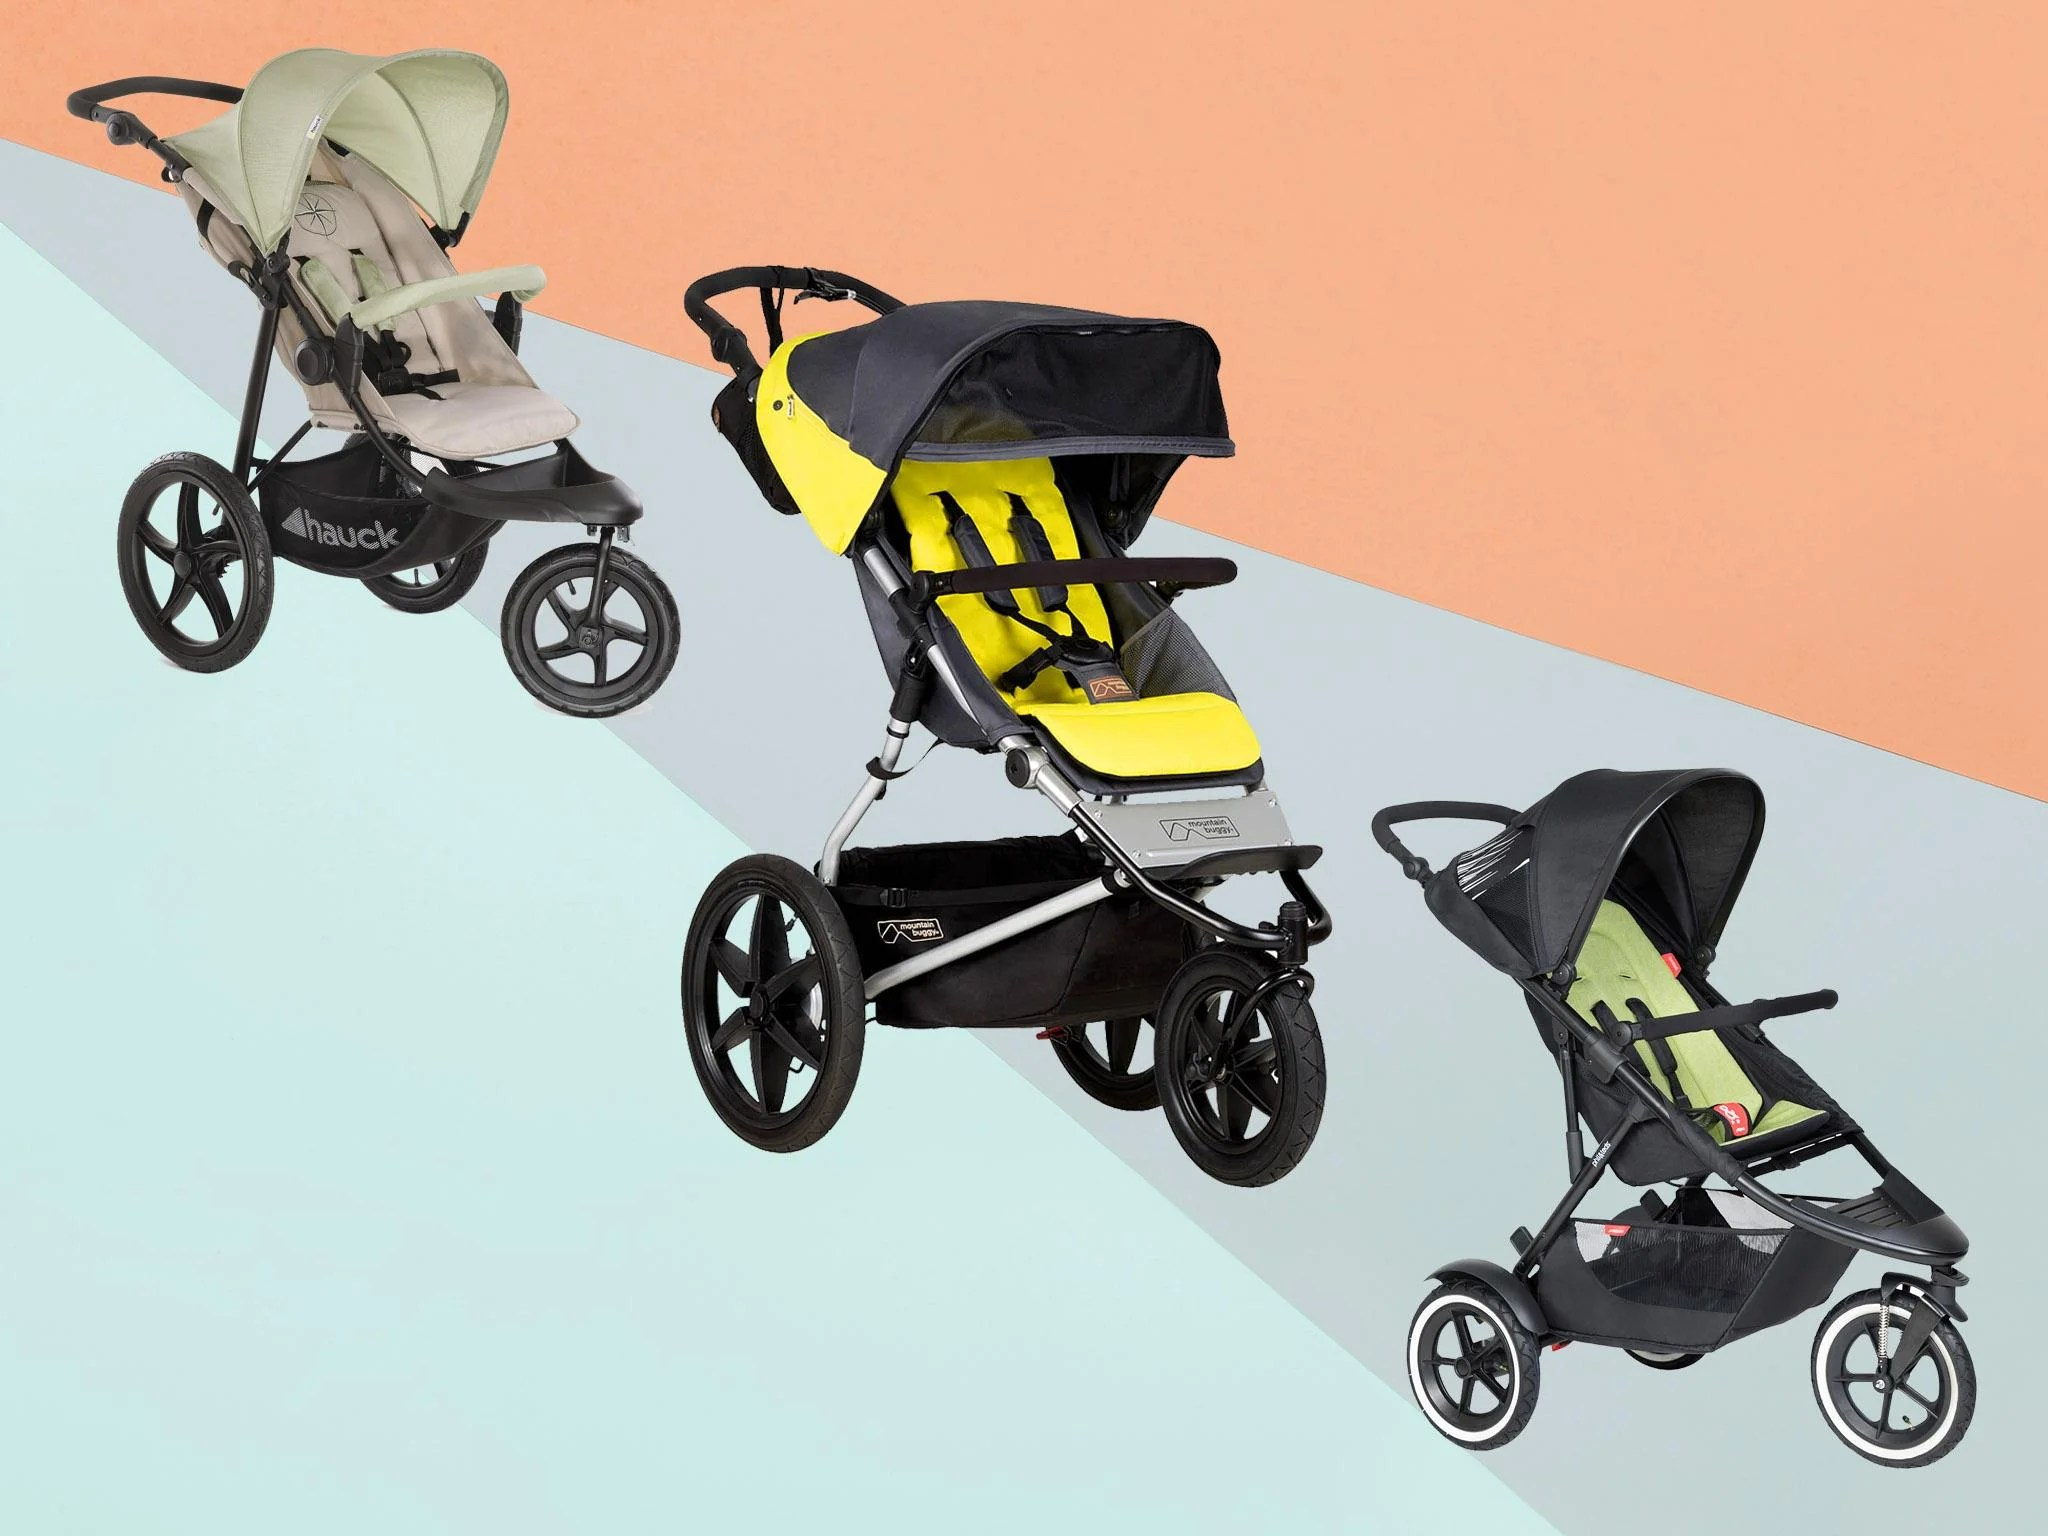 Newborn Stroller Nz Best Jogging Stroller For Keeping Fit With Your Baby And Toddler